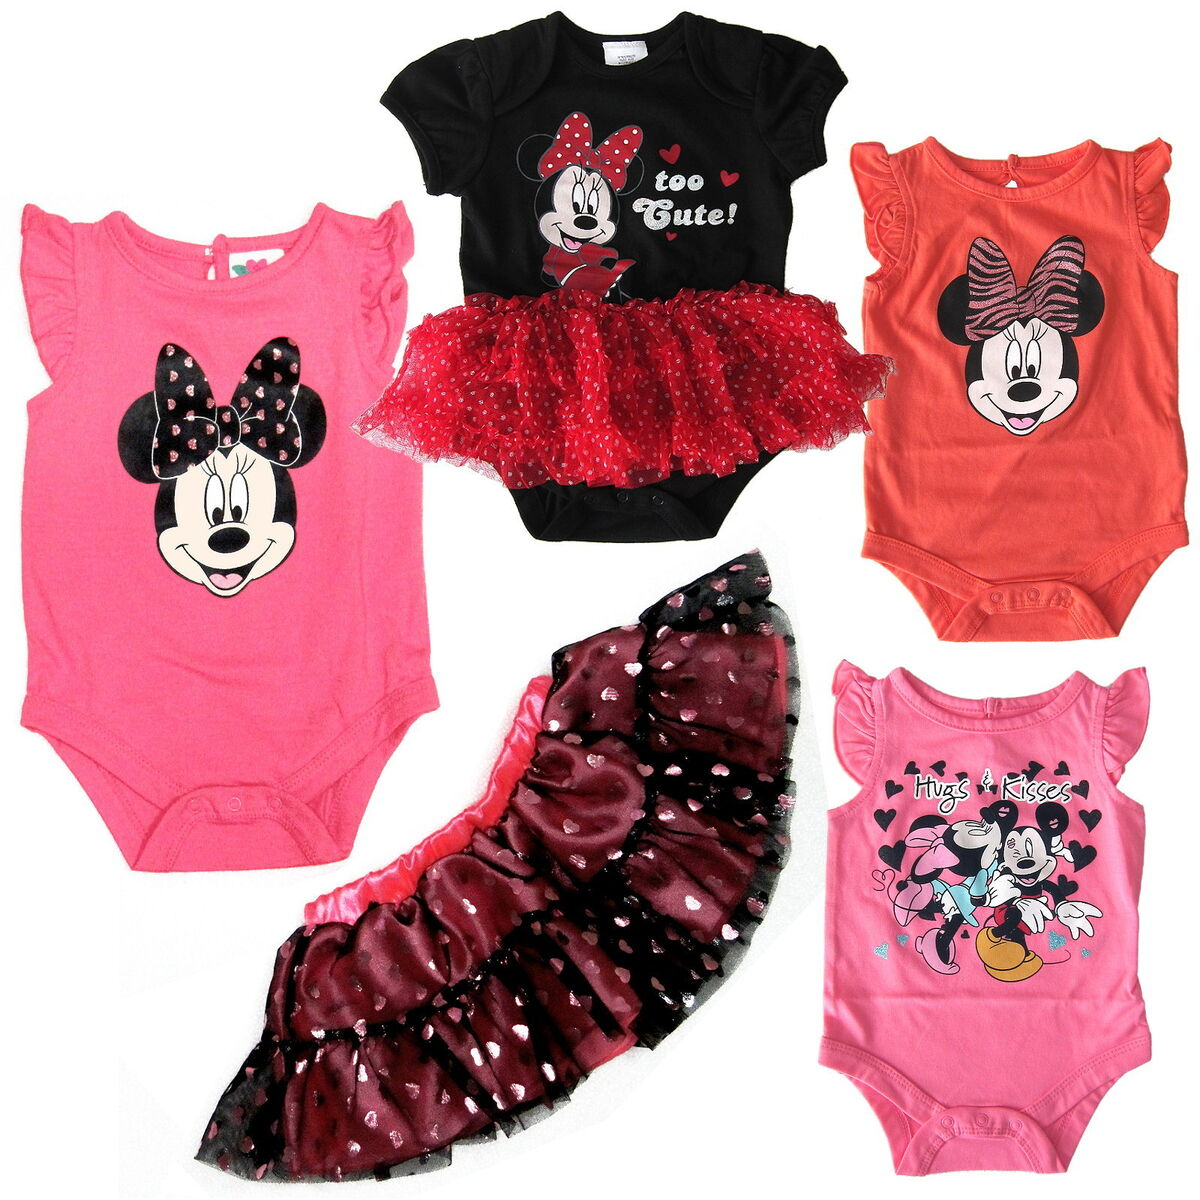 Baby Girl Bodysuit One Piece Shirt Disney Mickey Minnie Mouse Summer Clothes New